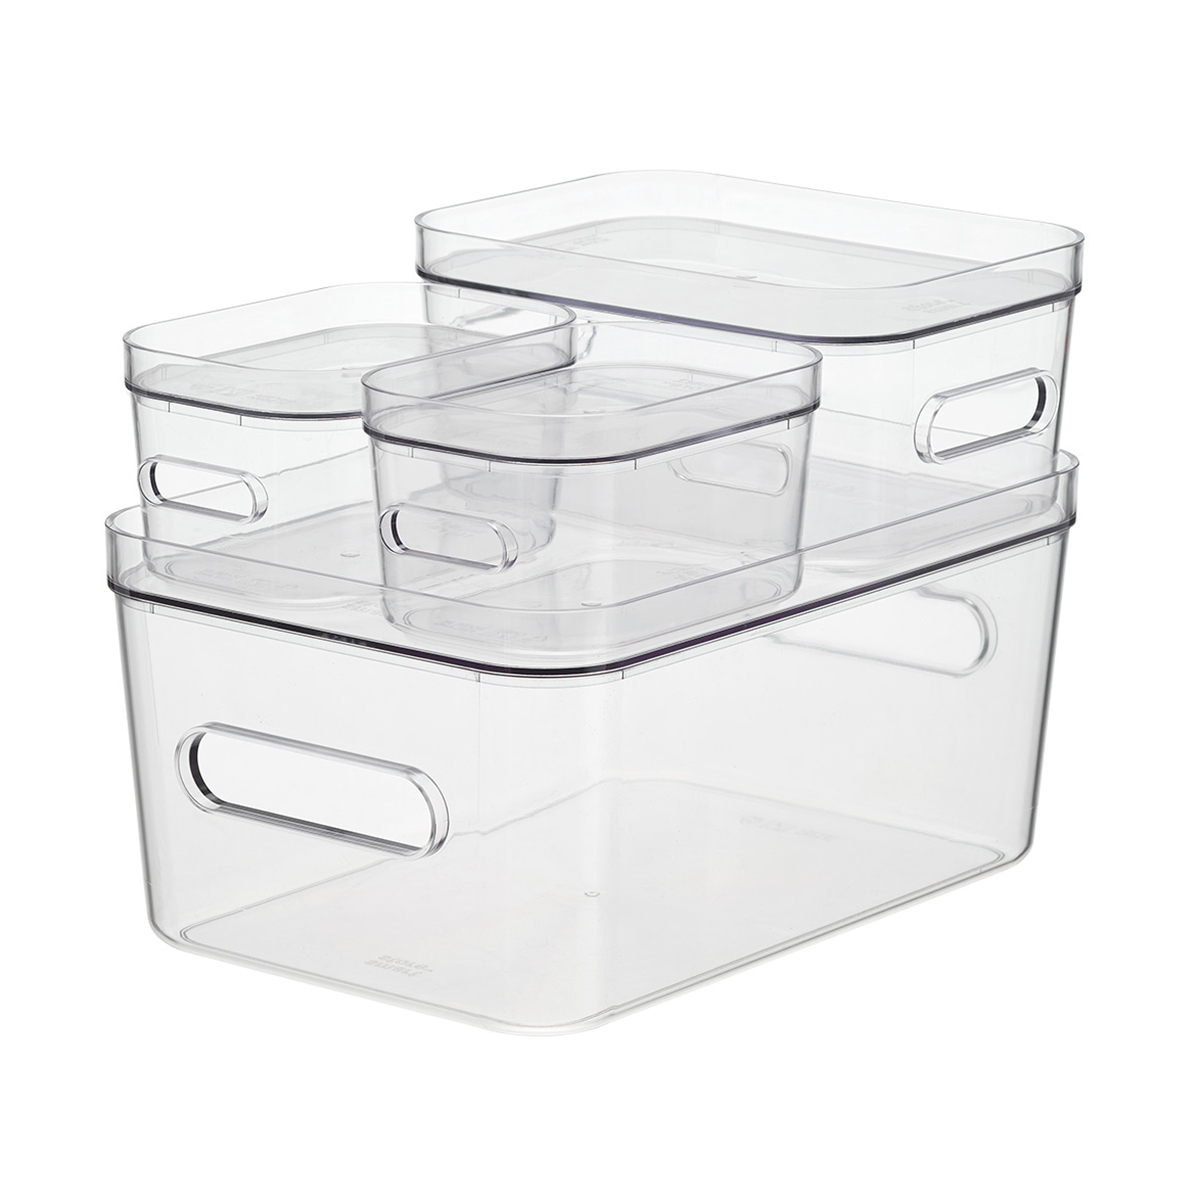 Smart Store Clear Compact Plastic Bins 4-Pack with Clear Lids